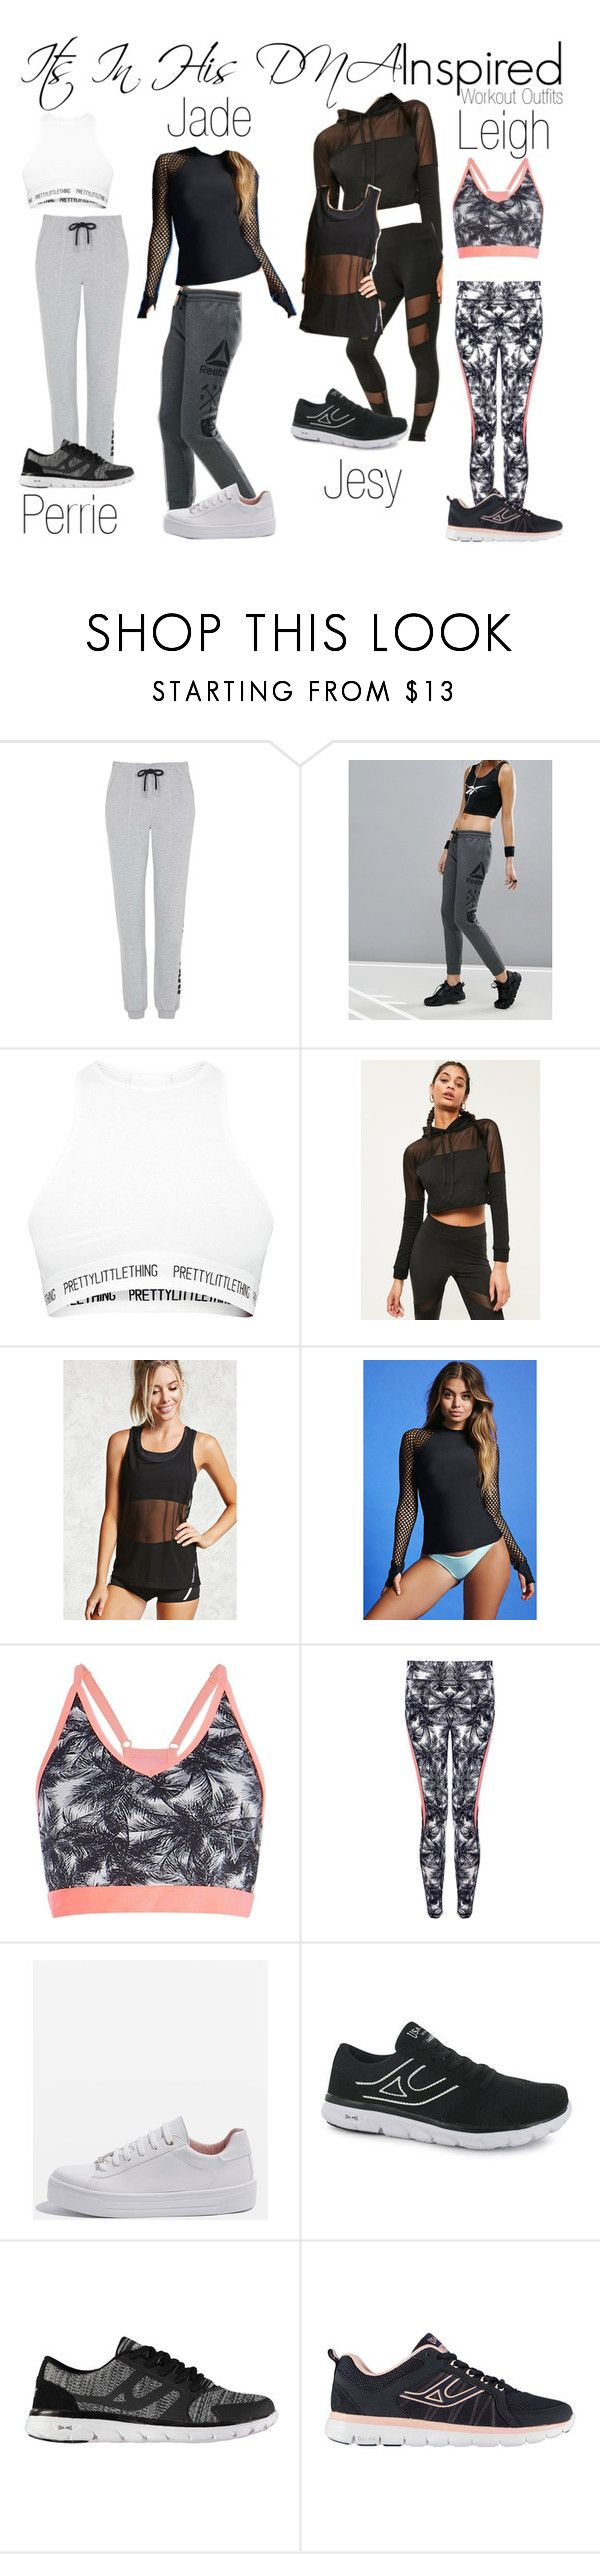 """Little Mix Inspired Workout Outfits"" by katiehorror ❤ liked on Polyvore featuring Topshop, Reebok, Missguided, Forever 21 and USA Pro"